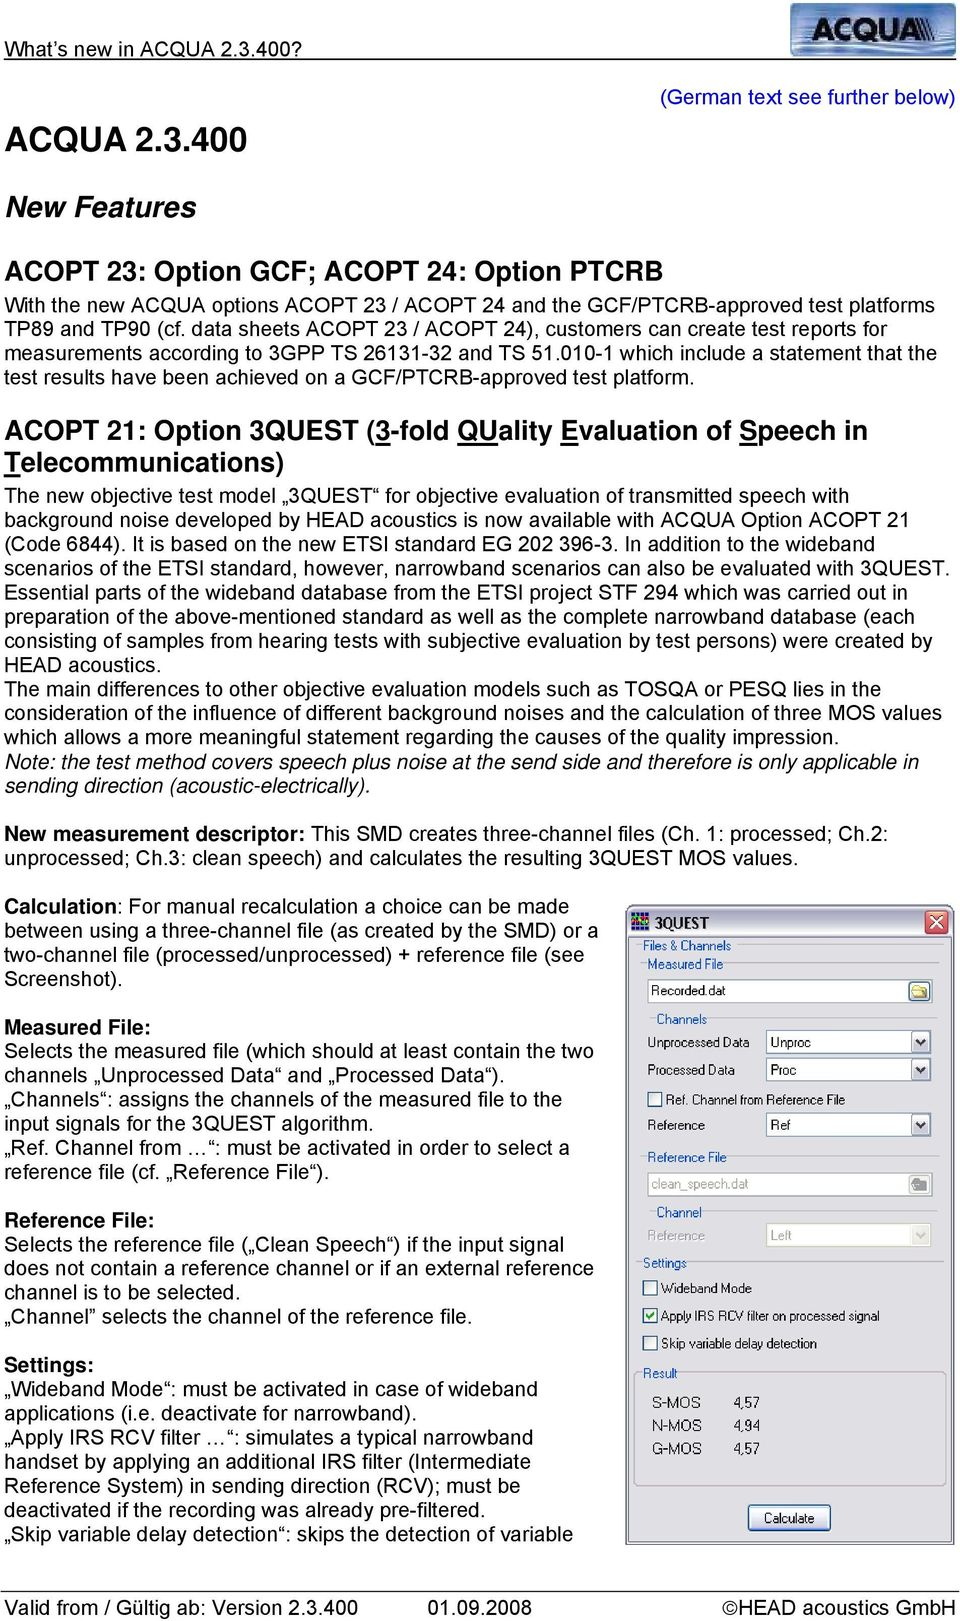 (cf. data sheets ACOPT 23 / ACOPT 24), customers can create test reports for measurements according to 3GPP TS 26131-32 and TS 51.